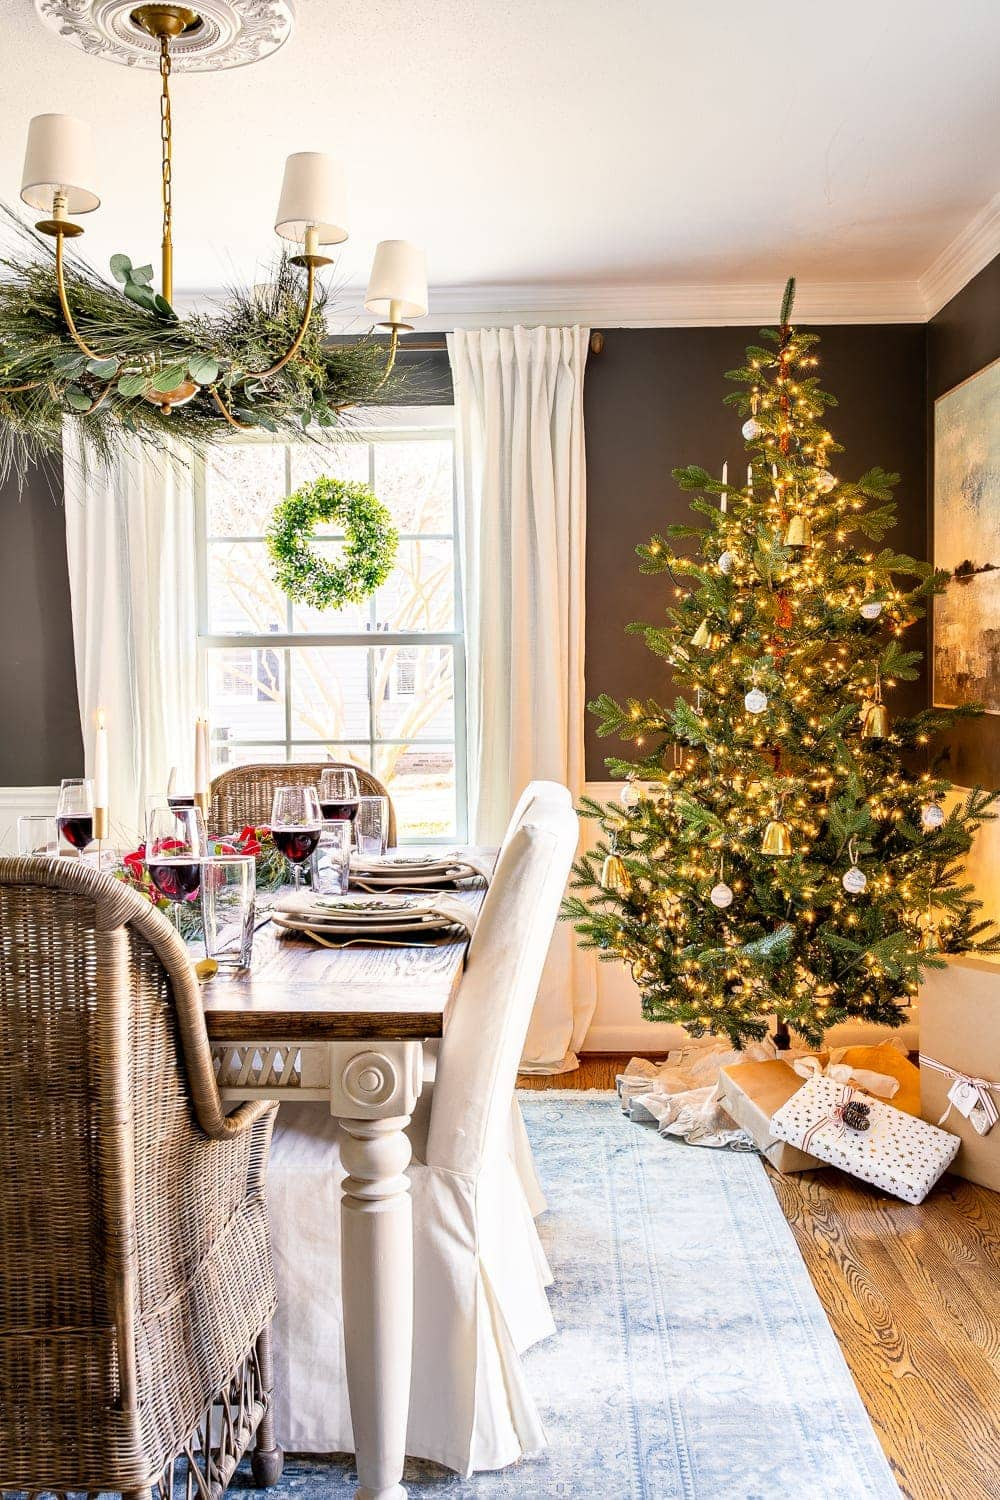 Christmas decorating ideas | Christmas tree in the dining room with garland on a chandelier and wreaths on windows